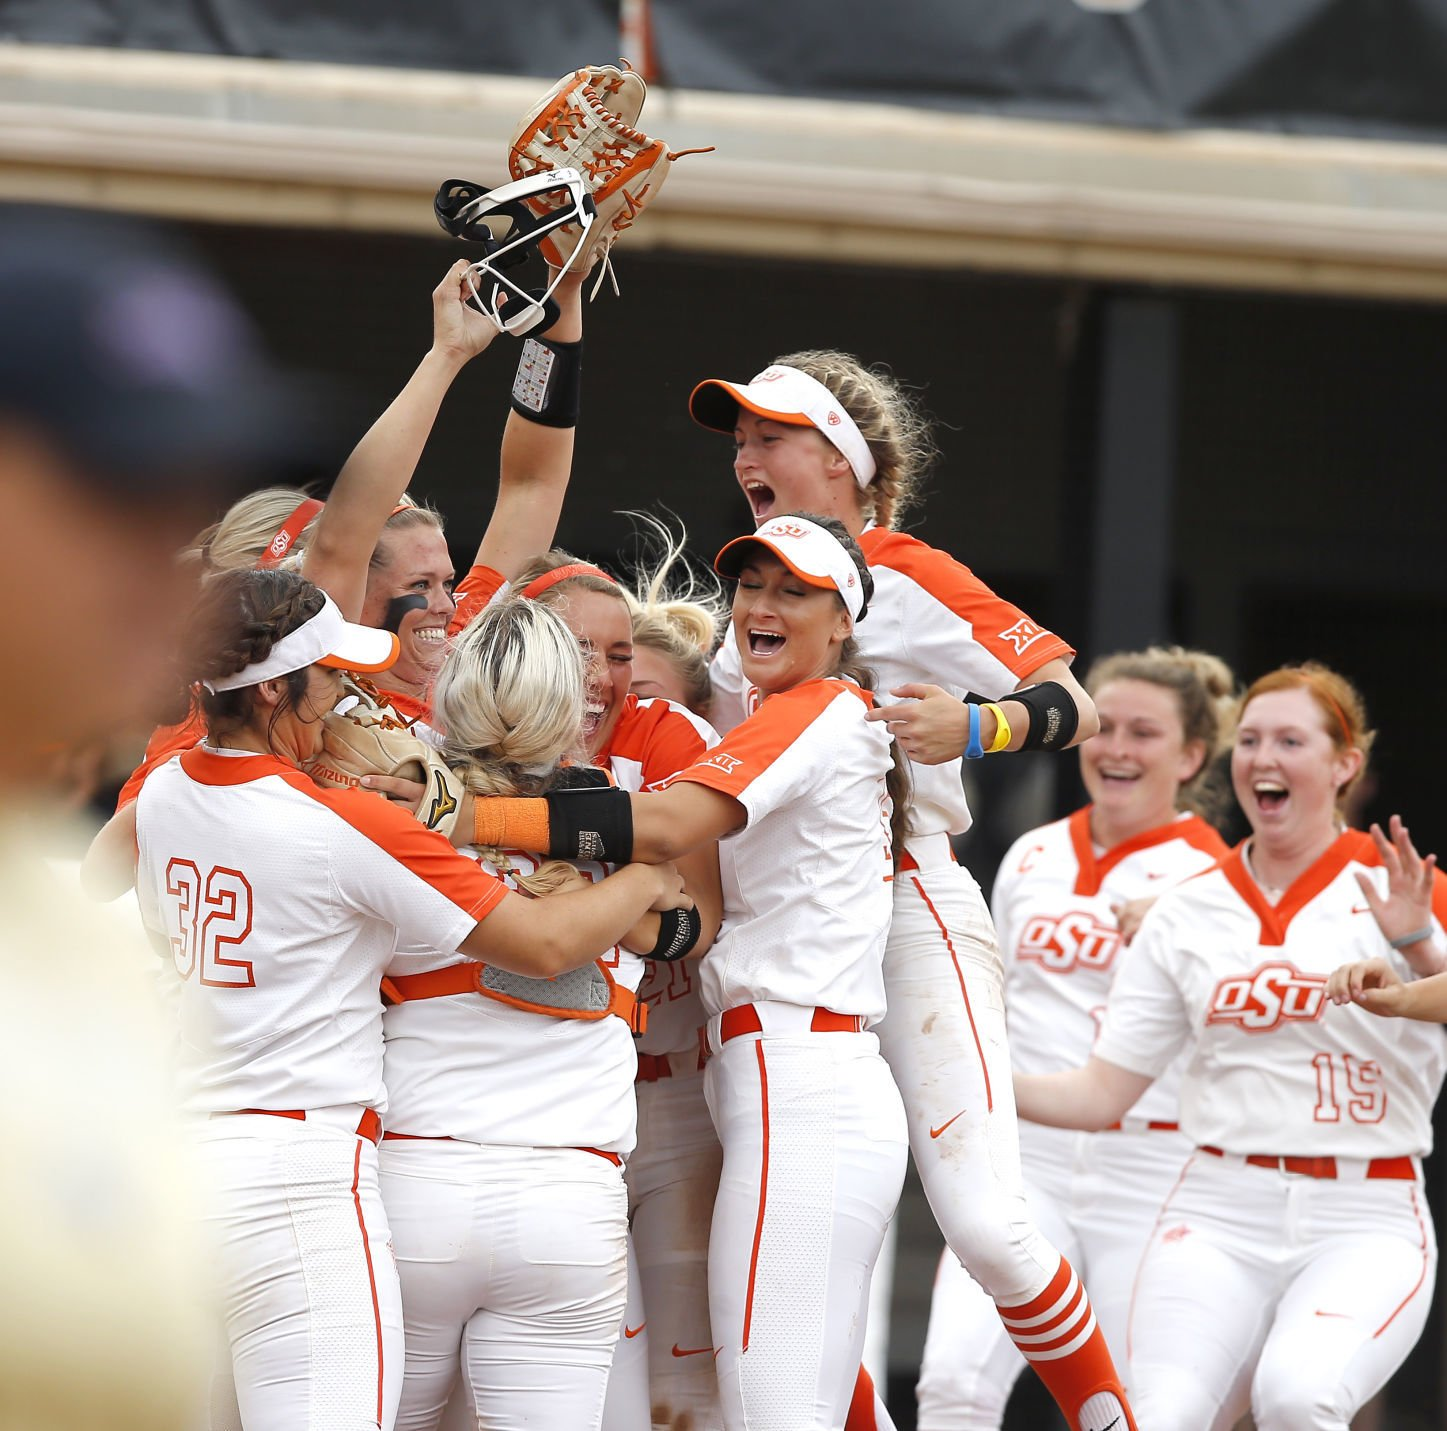 OSU NCAA SOFTBALL